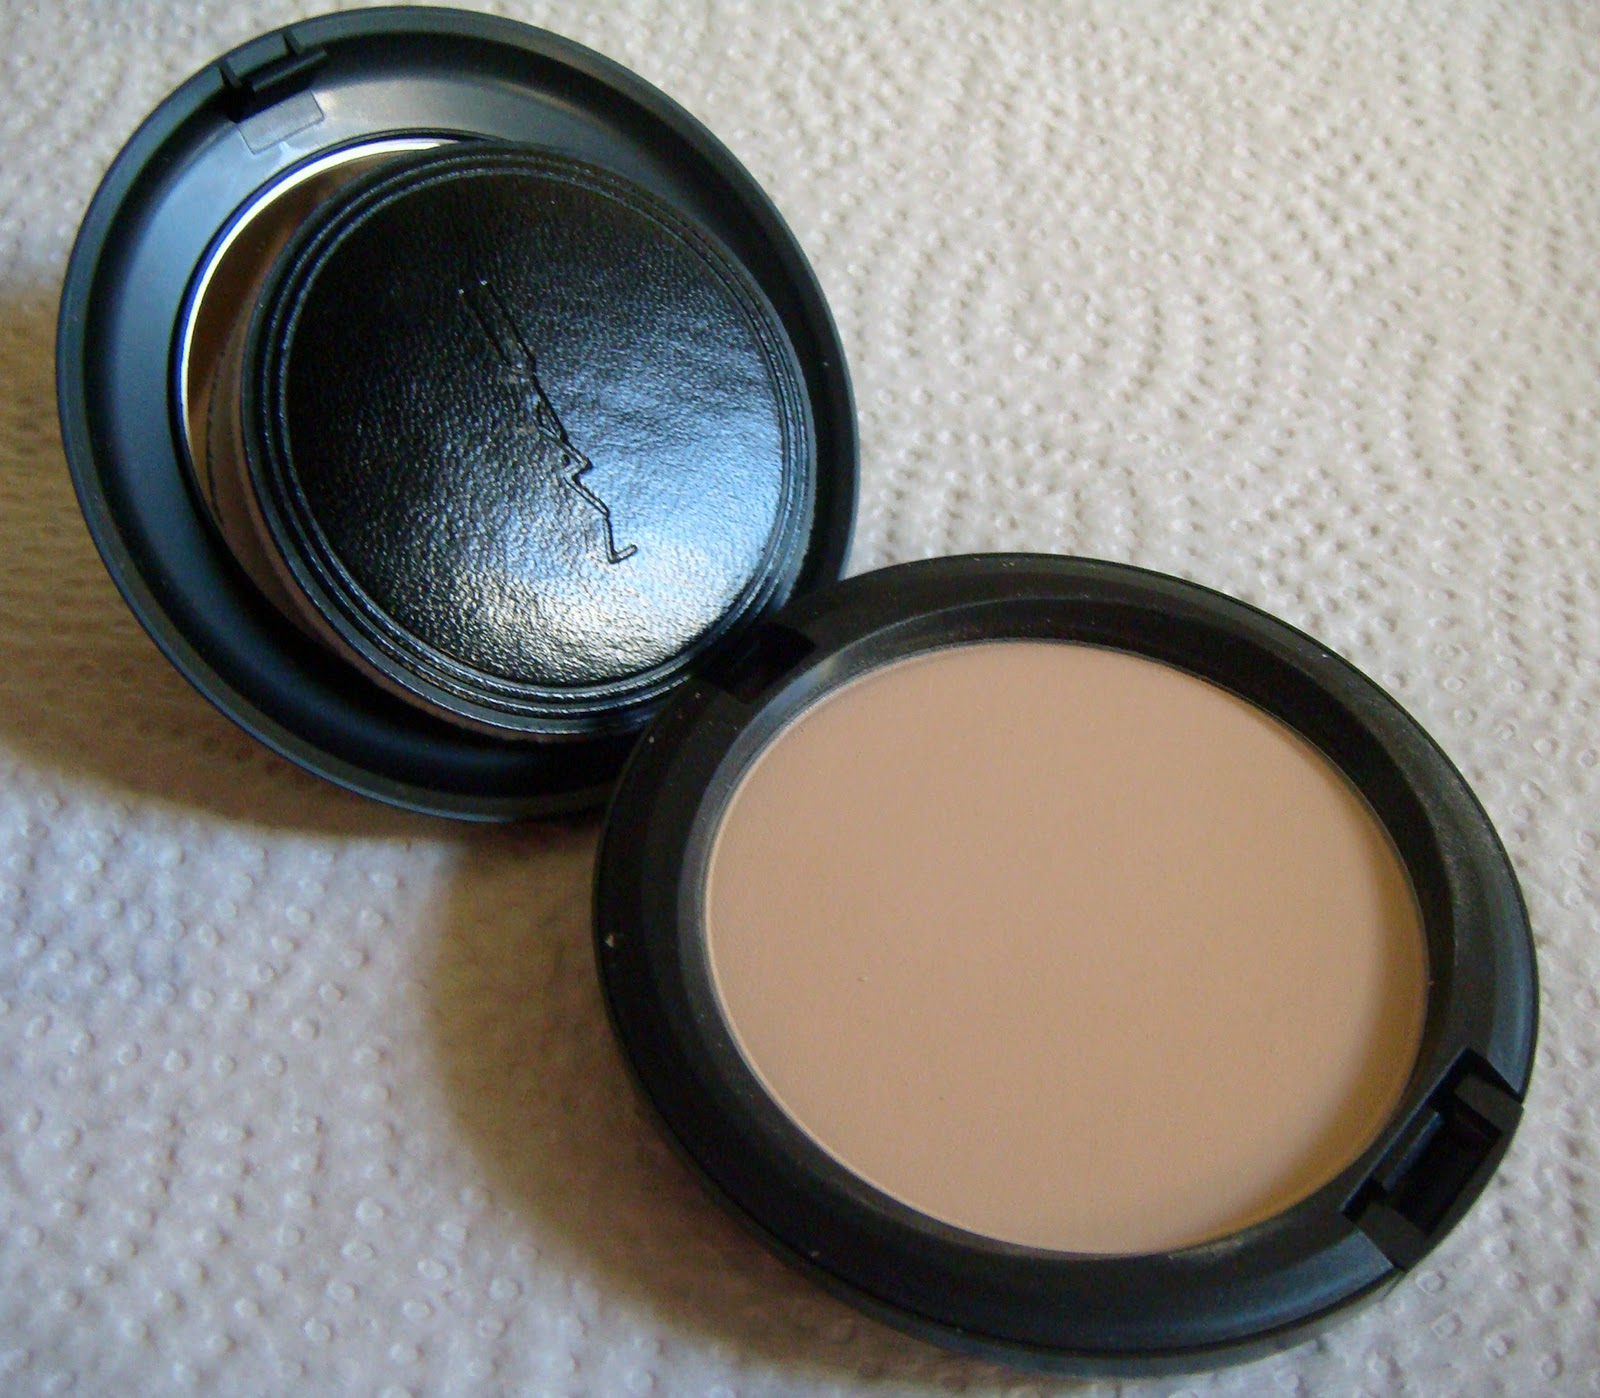 Scrapgalgr Loves Blush Basics Face Tools Revlon Touch And Glow Powder 43 Gr It Is Supposed To Be Like A Setting Mist After The Makeup Application Blend Everything Seamlessly Together